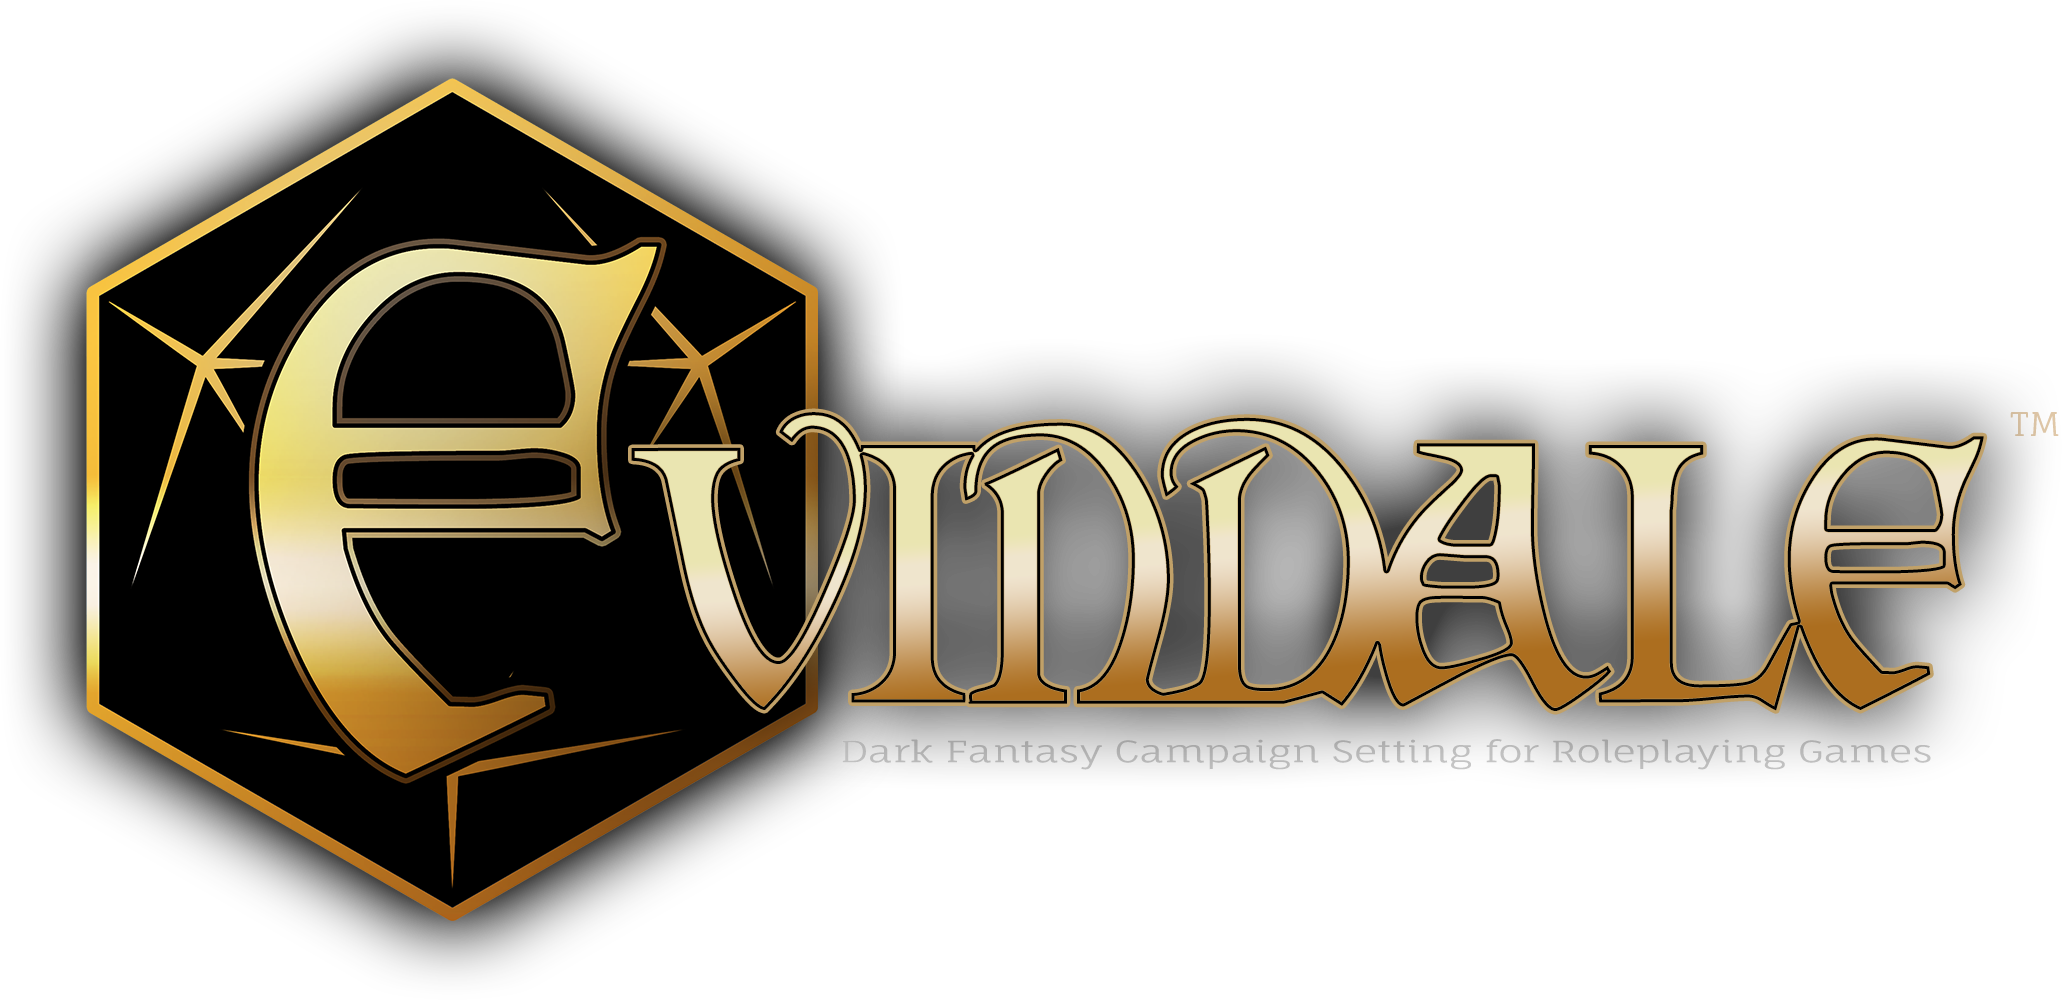 The World of Evindale Dark Fantasy Campaign Setting for Roleplaying Games